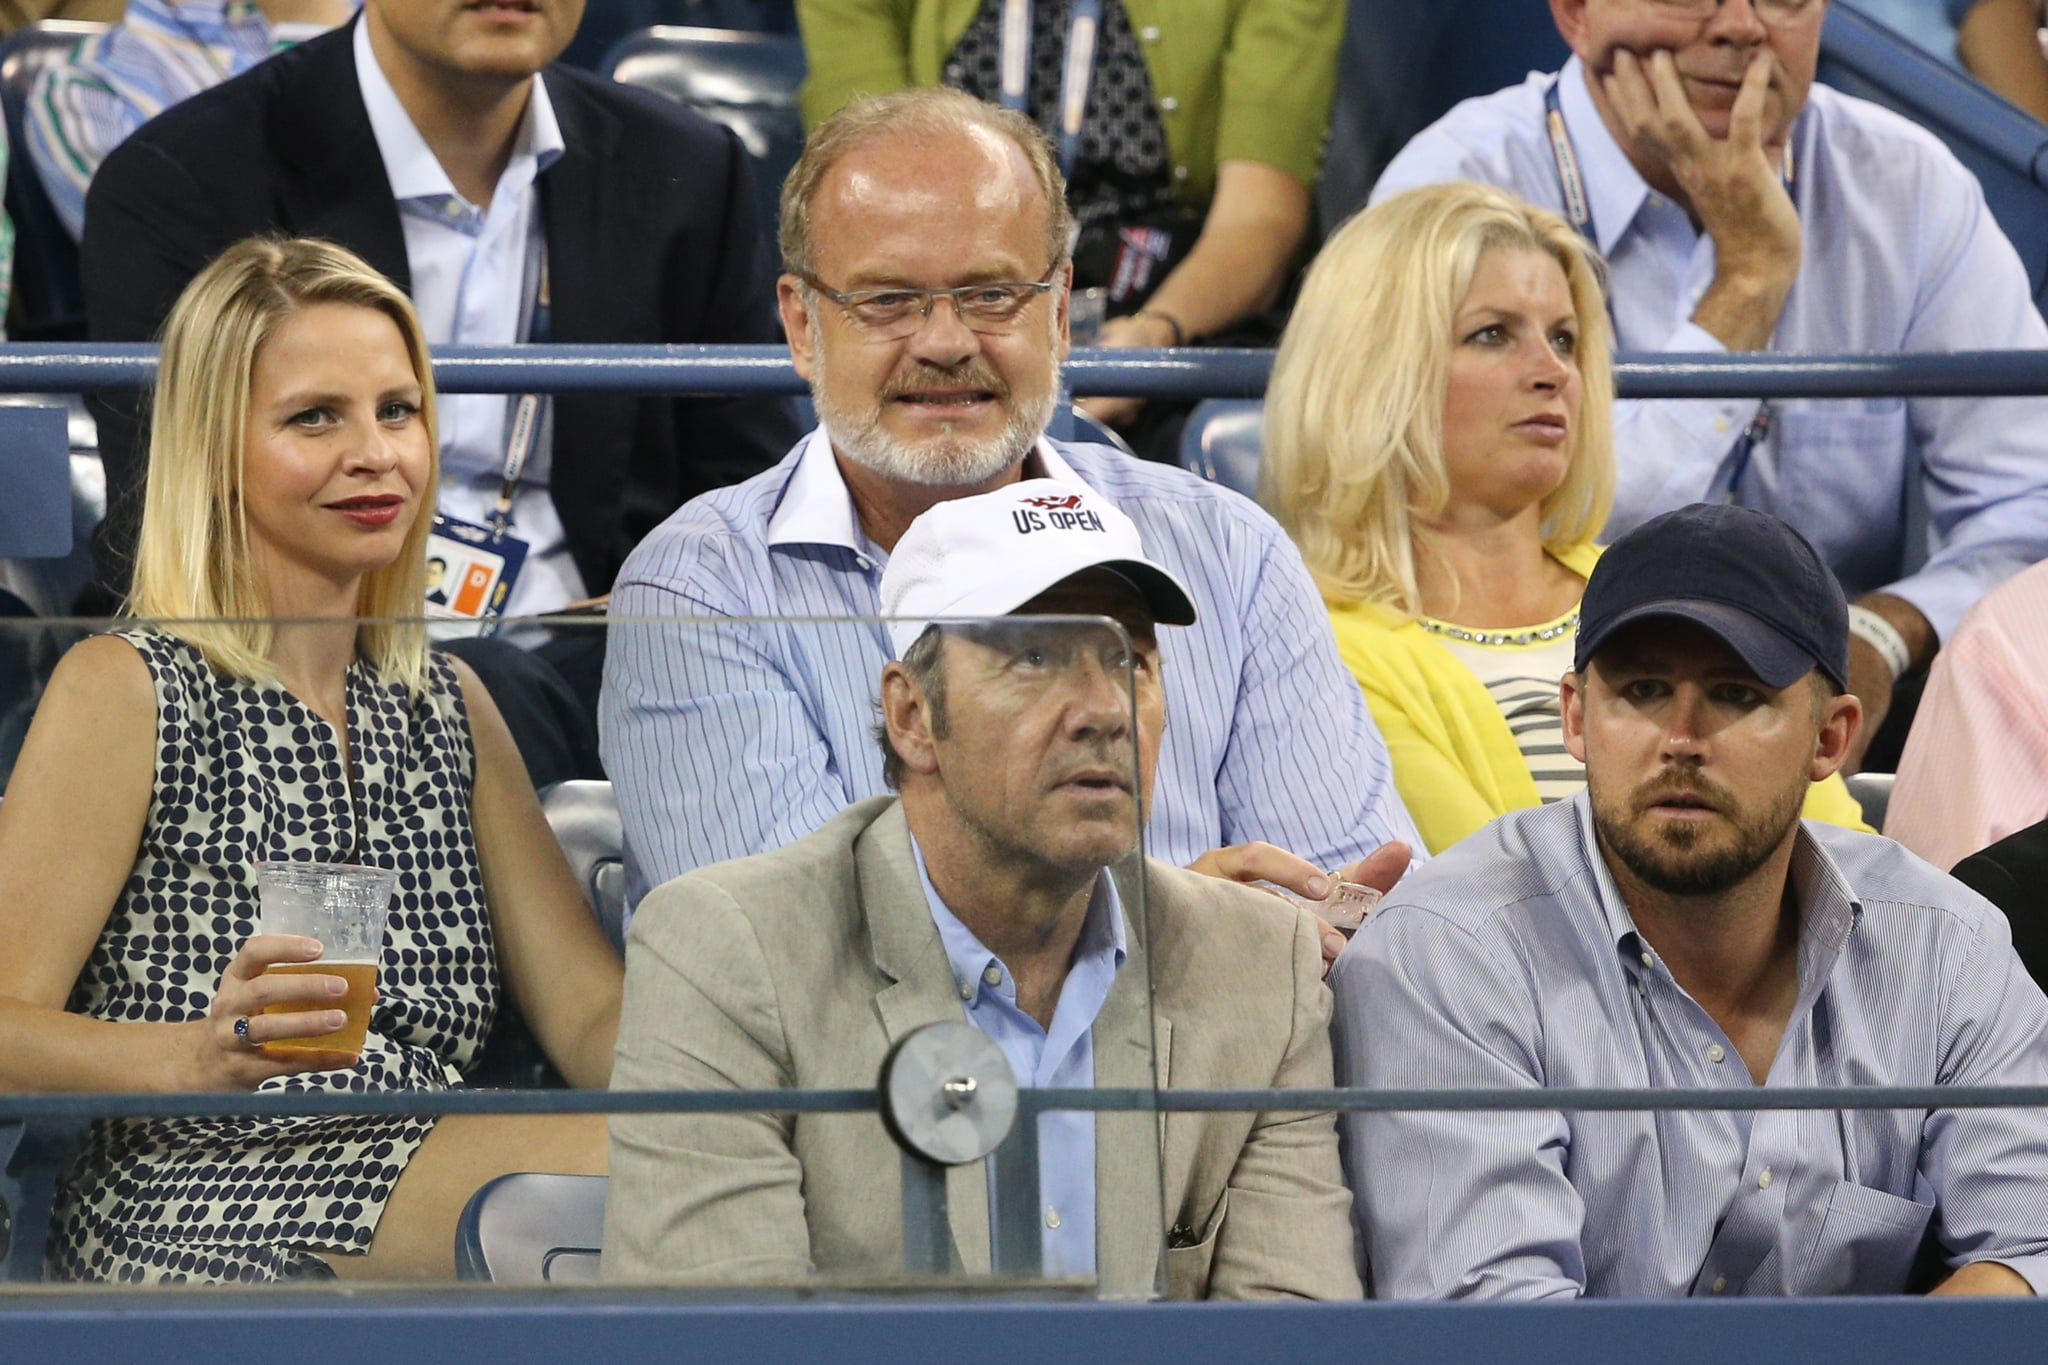 Kelsey Grammer and Kayte Walsh sat near Kevin Spacey at the US Open.